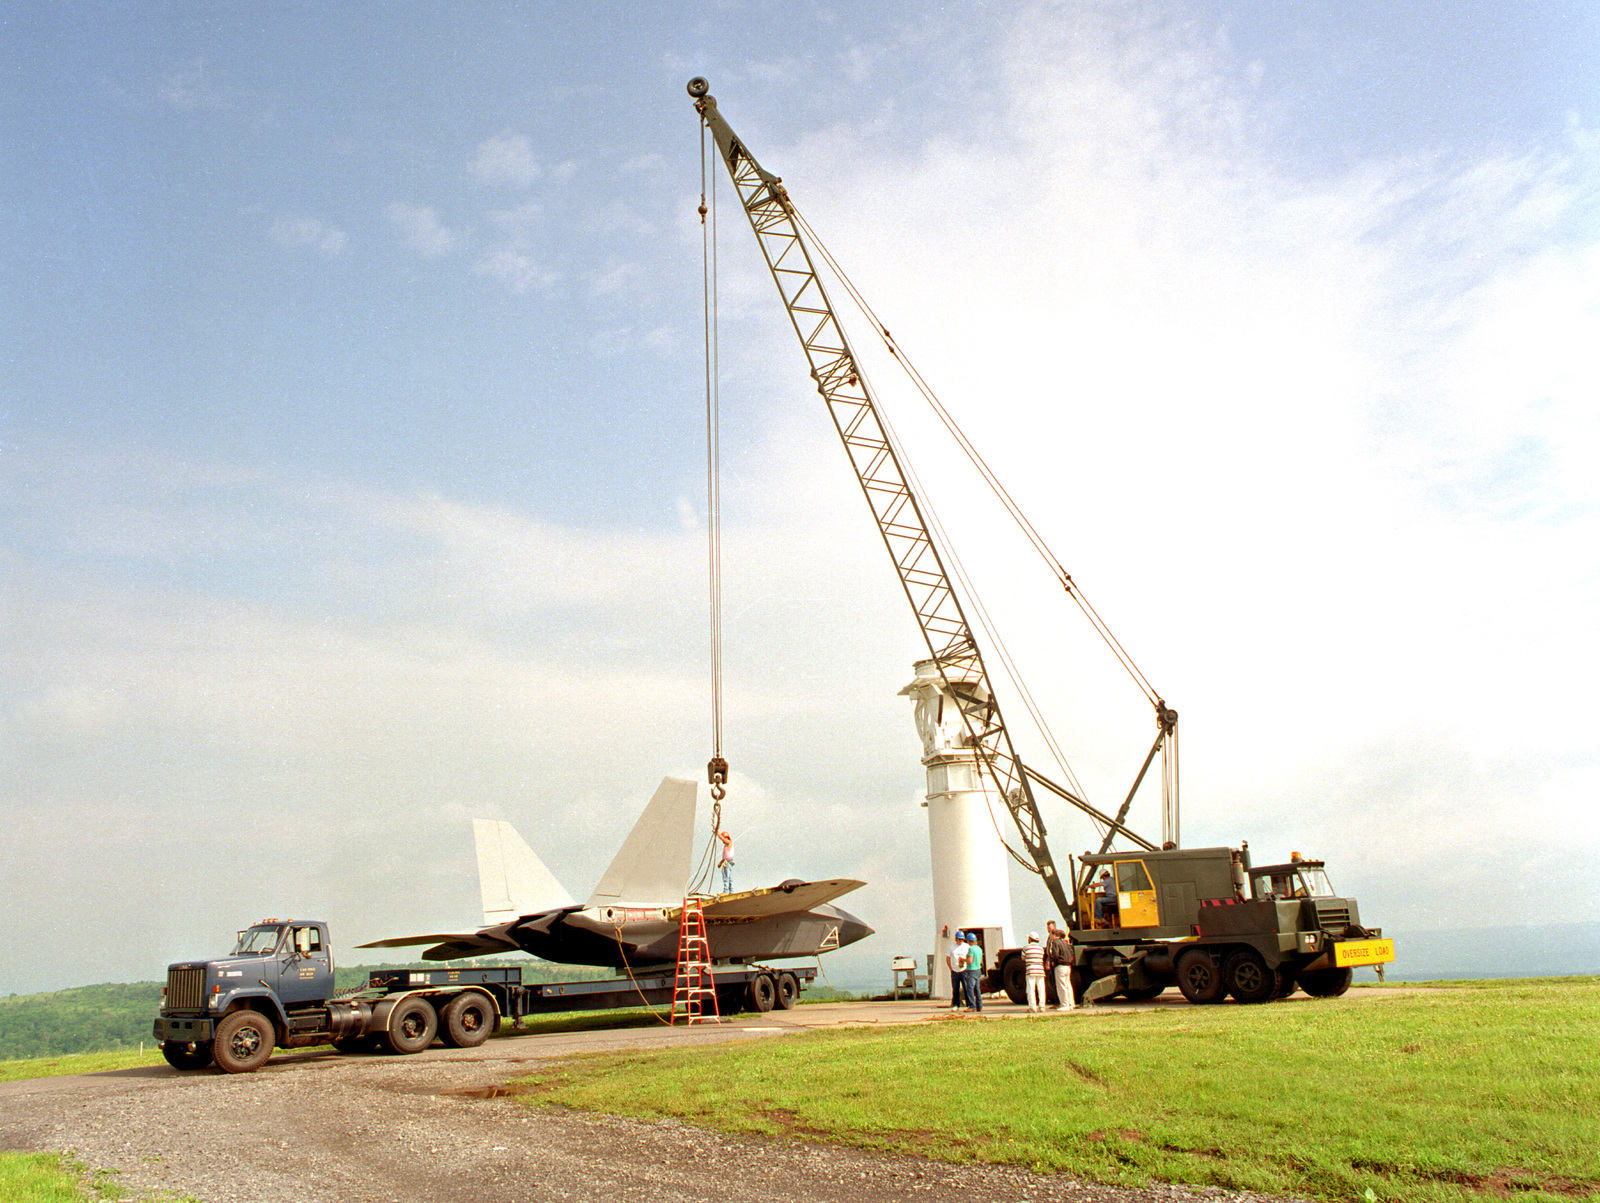 A crew assigned to Rome Laboratory's Newport, NY test site prepares to hoist a modified YF-22 airframe to a pedestal for antenna measurement tests. During initial testing, over 400,000 antenna measurements will be taken